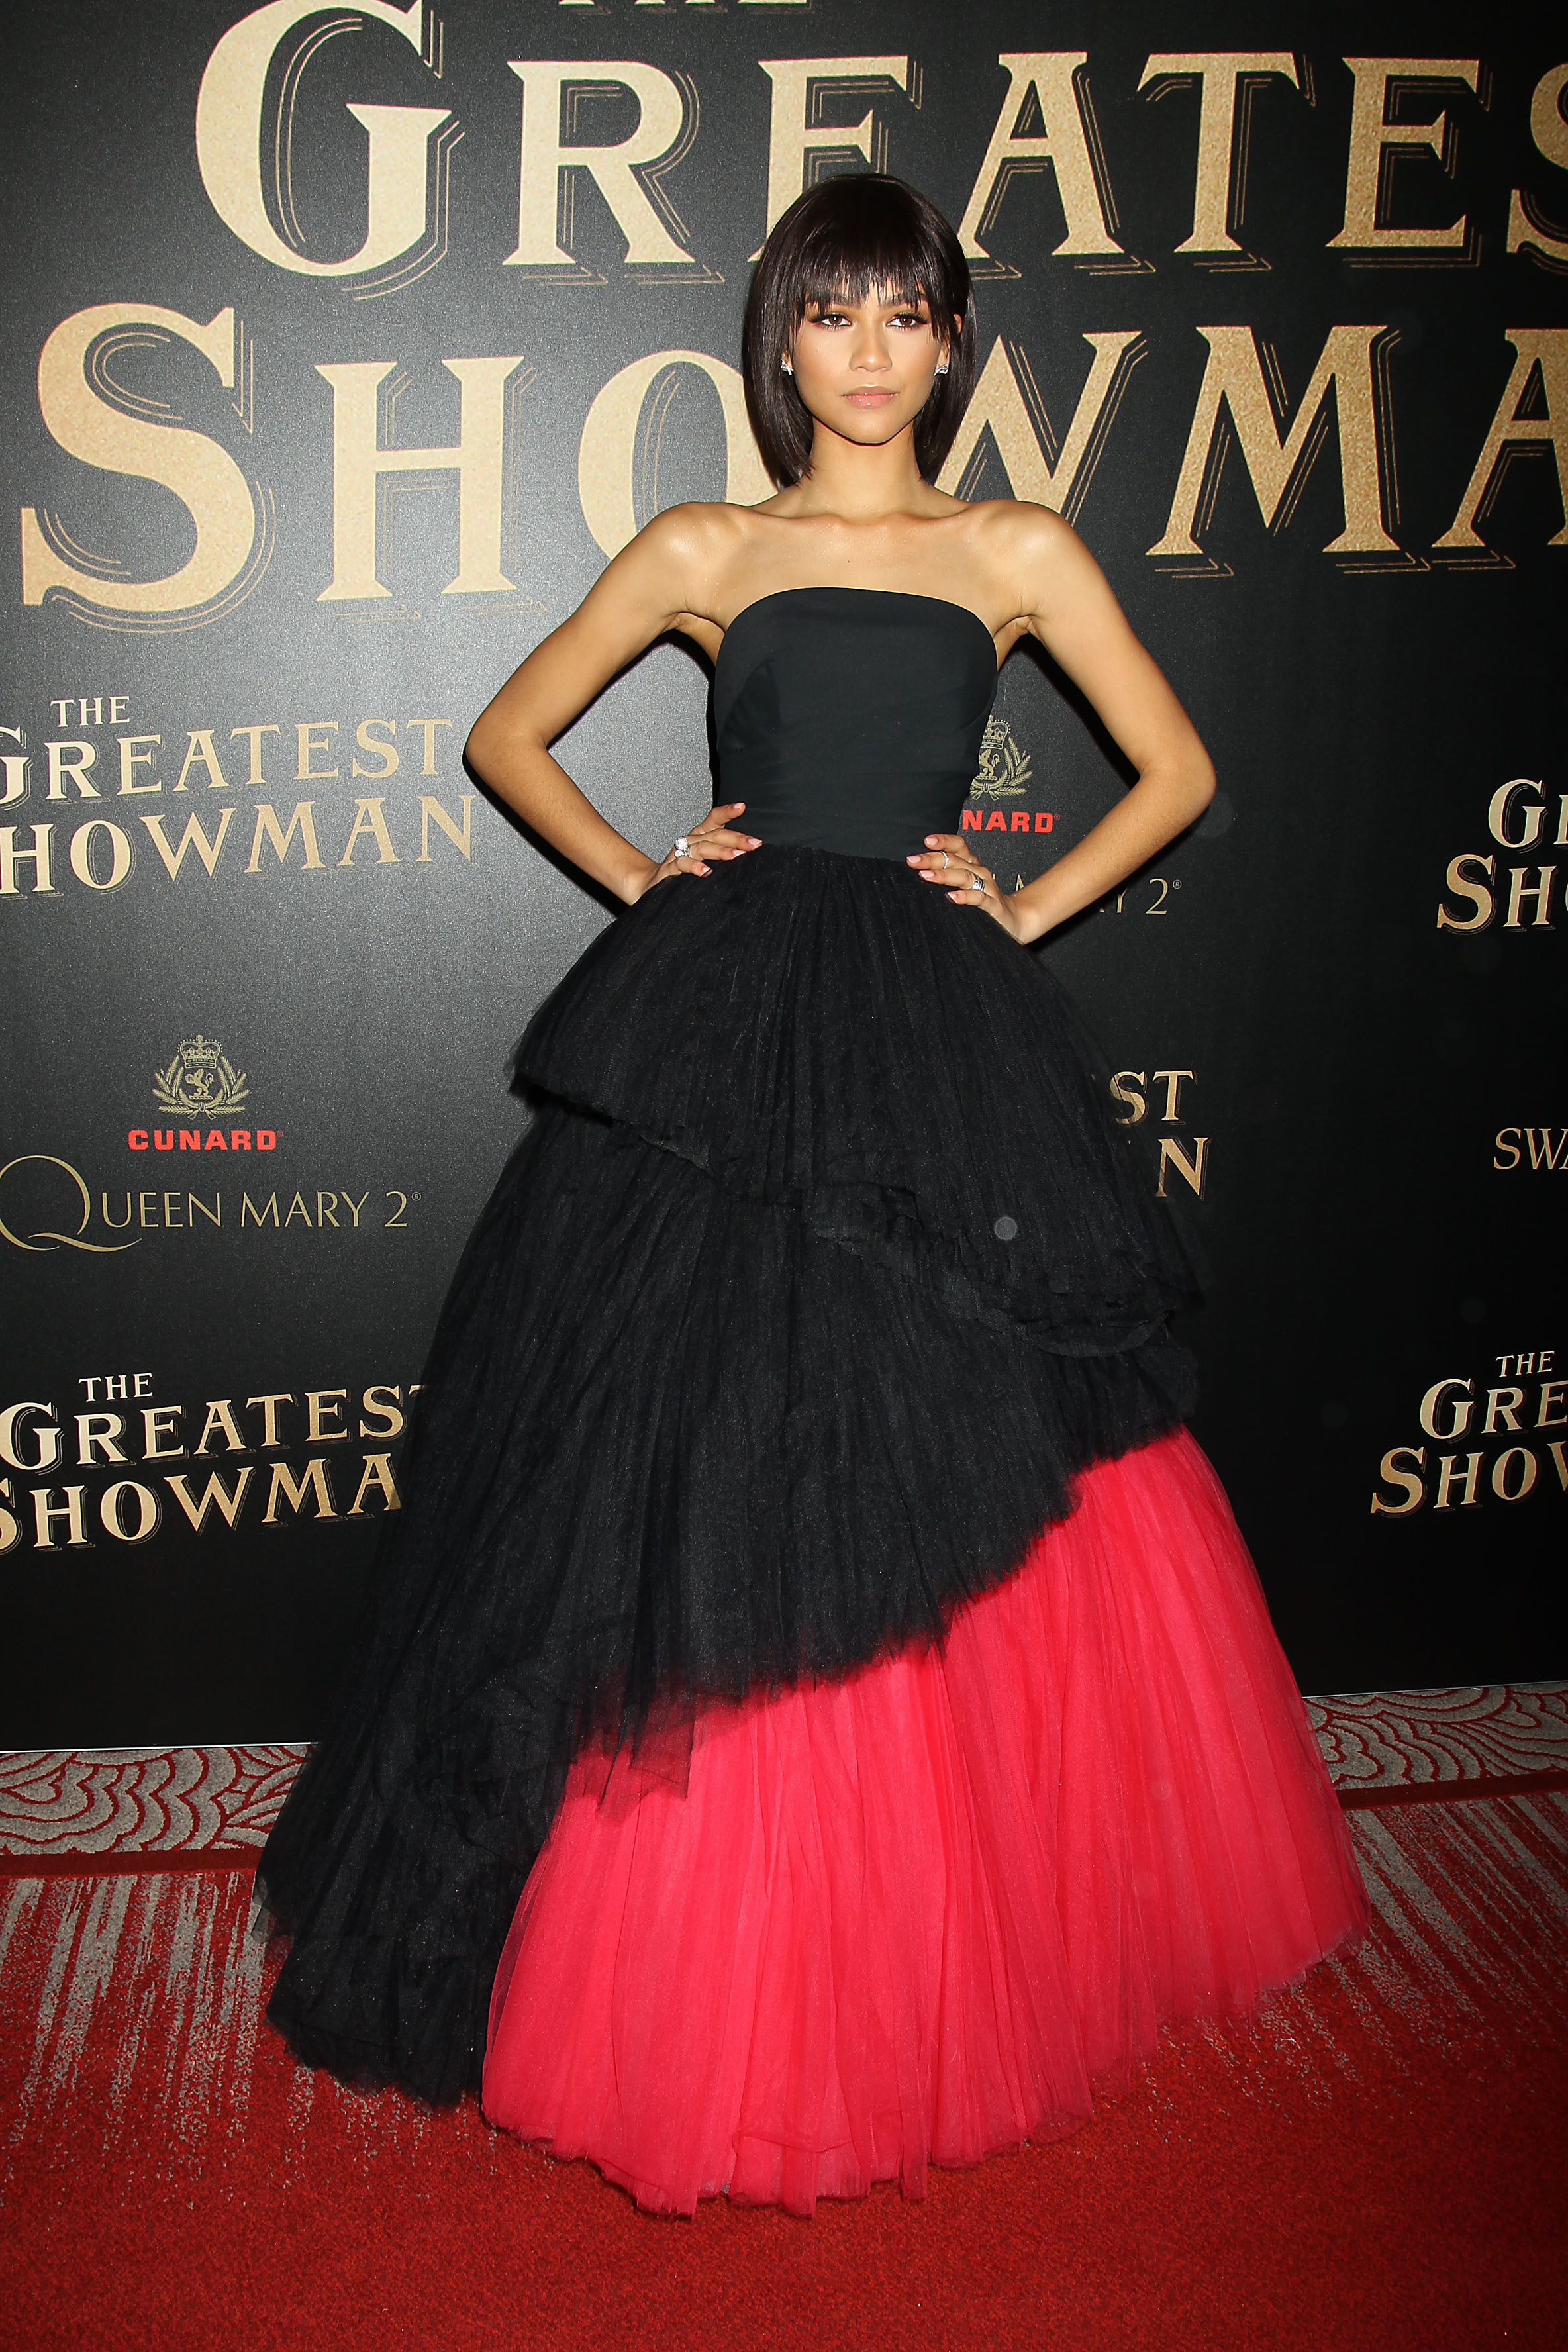 """Zendaya attends the Twentieth Century Fox In partnership with Cunard and Swarovski for the world premiere of """"The Greatest Showman"""" on Queen Mary 2 in New York City on Dec. 8, 2017."""